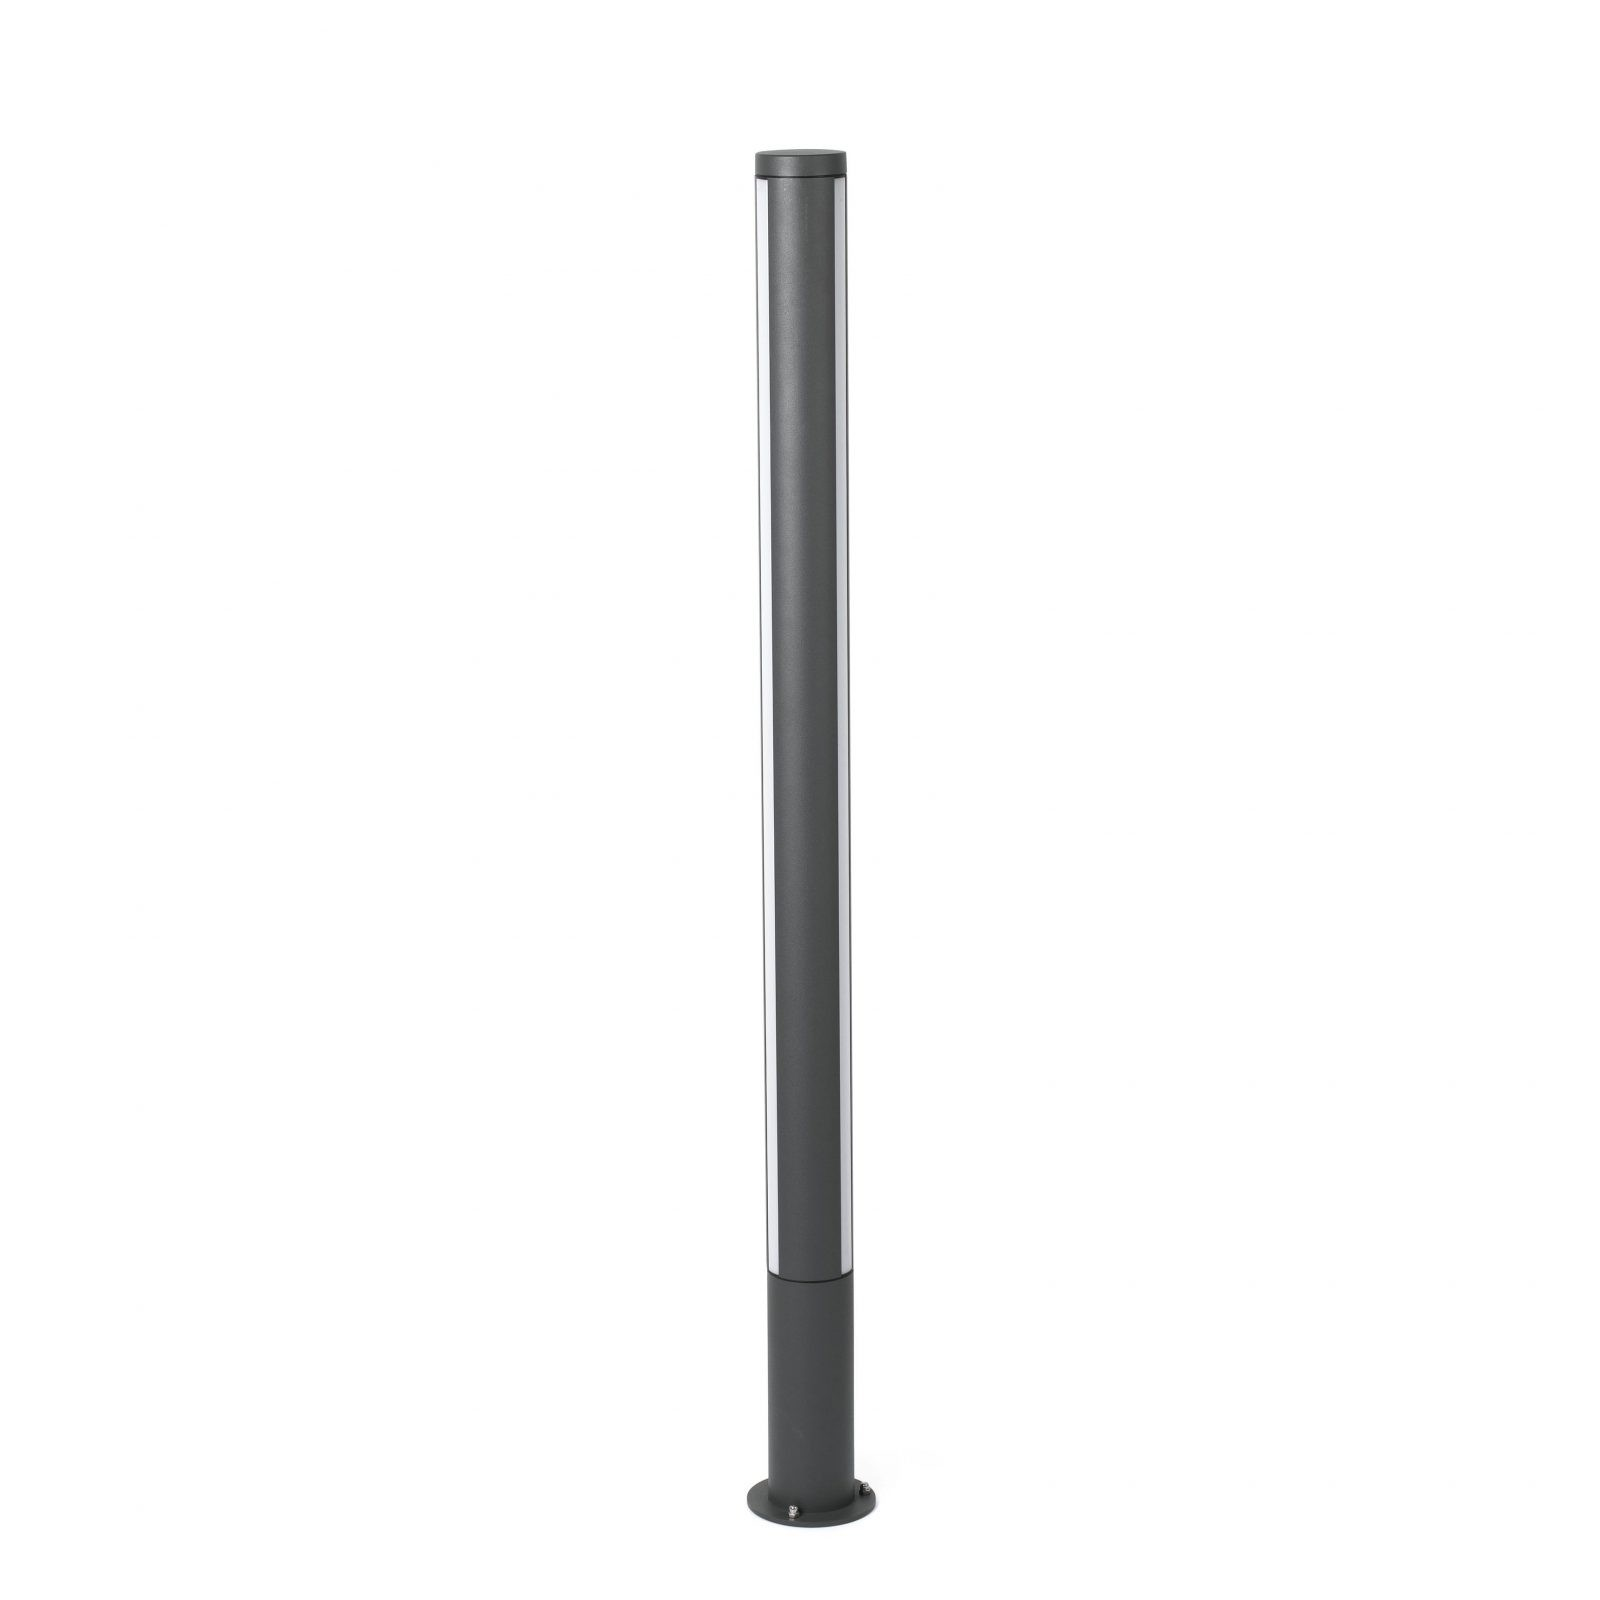 Faro GROP-2 LED Dark grey beacon lamp h125cm